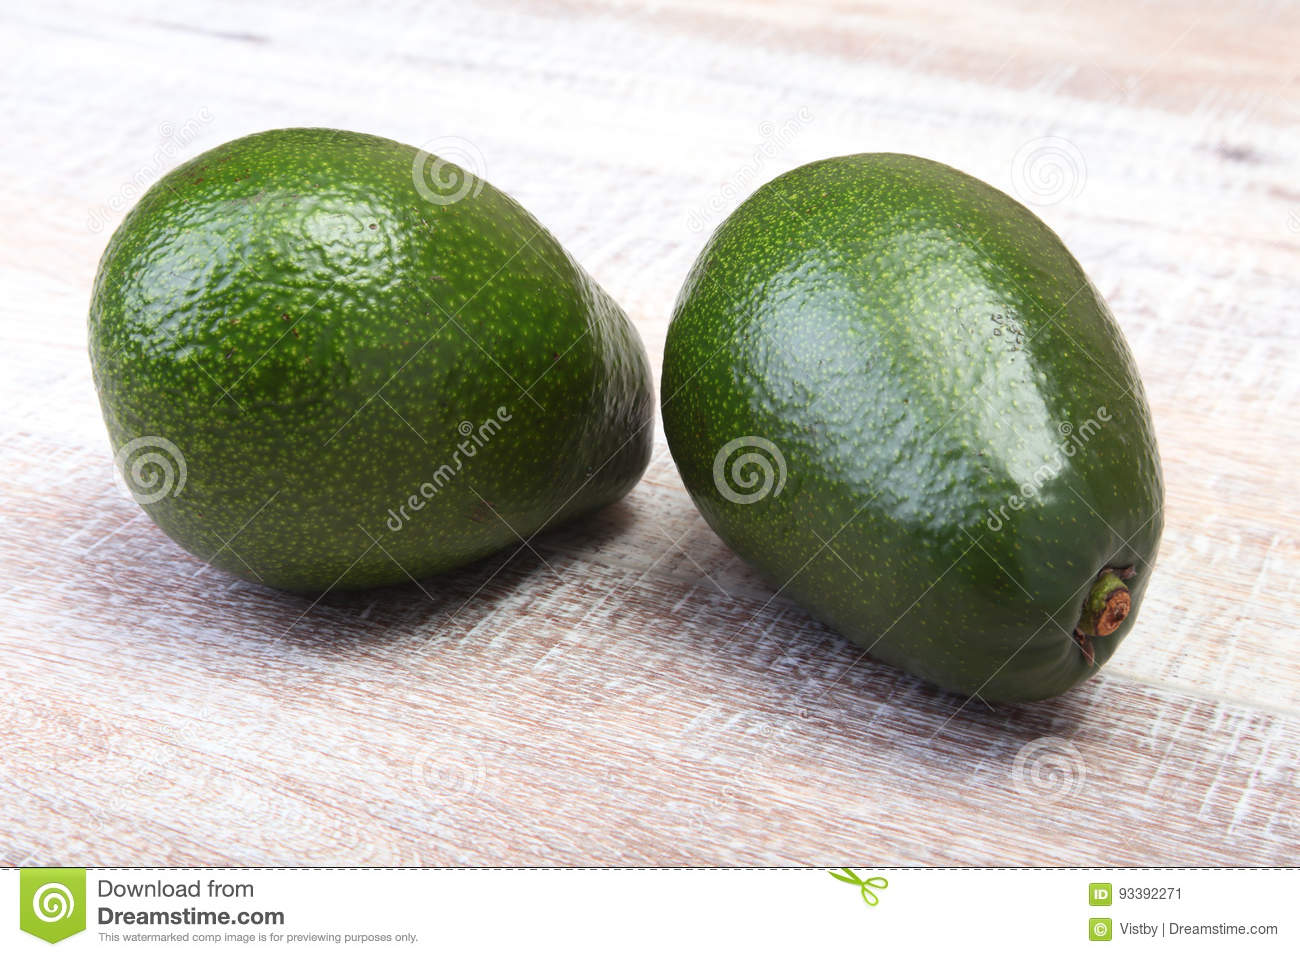 Fresh, green Avocado isolated on a white background.